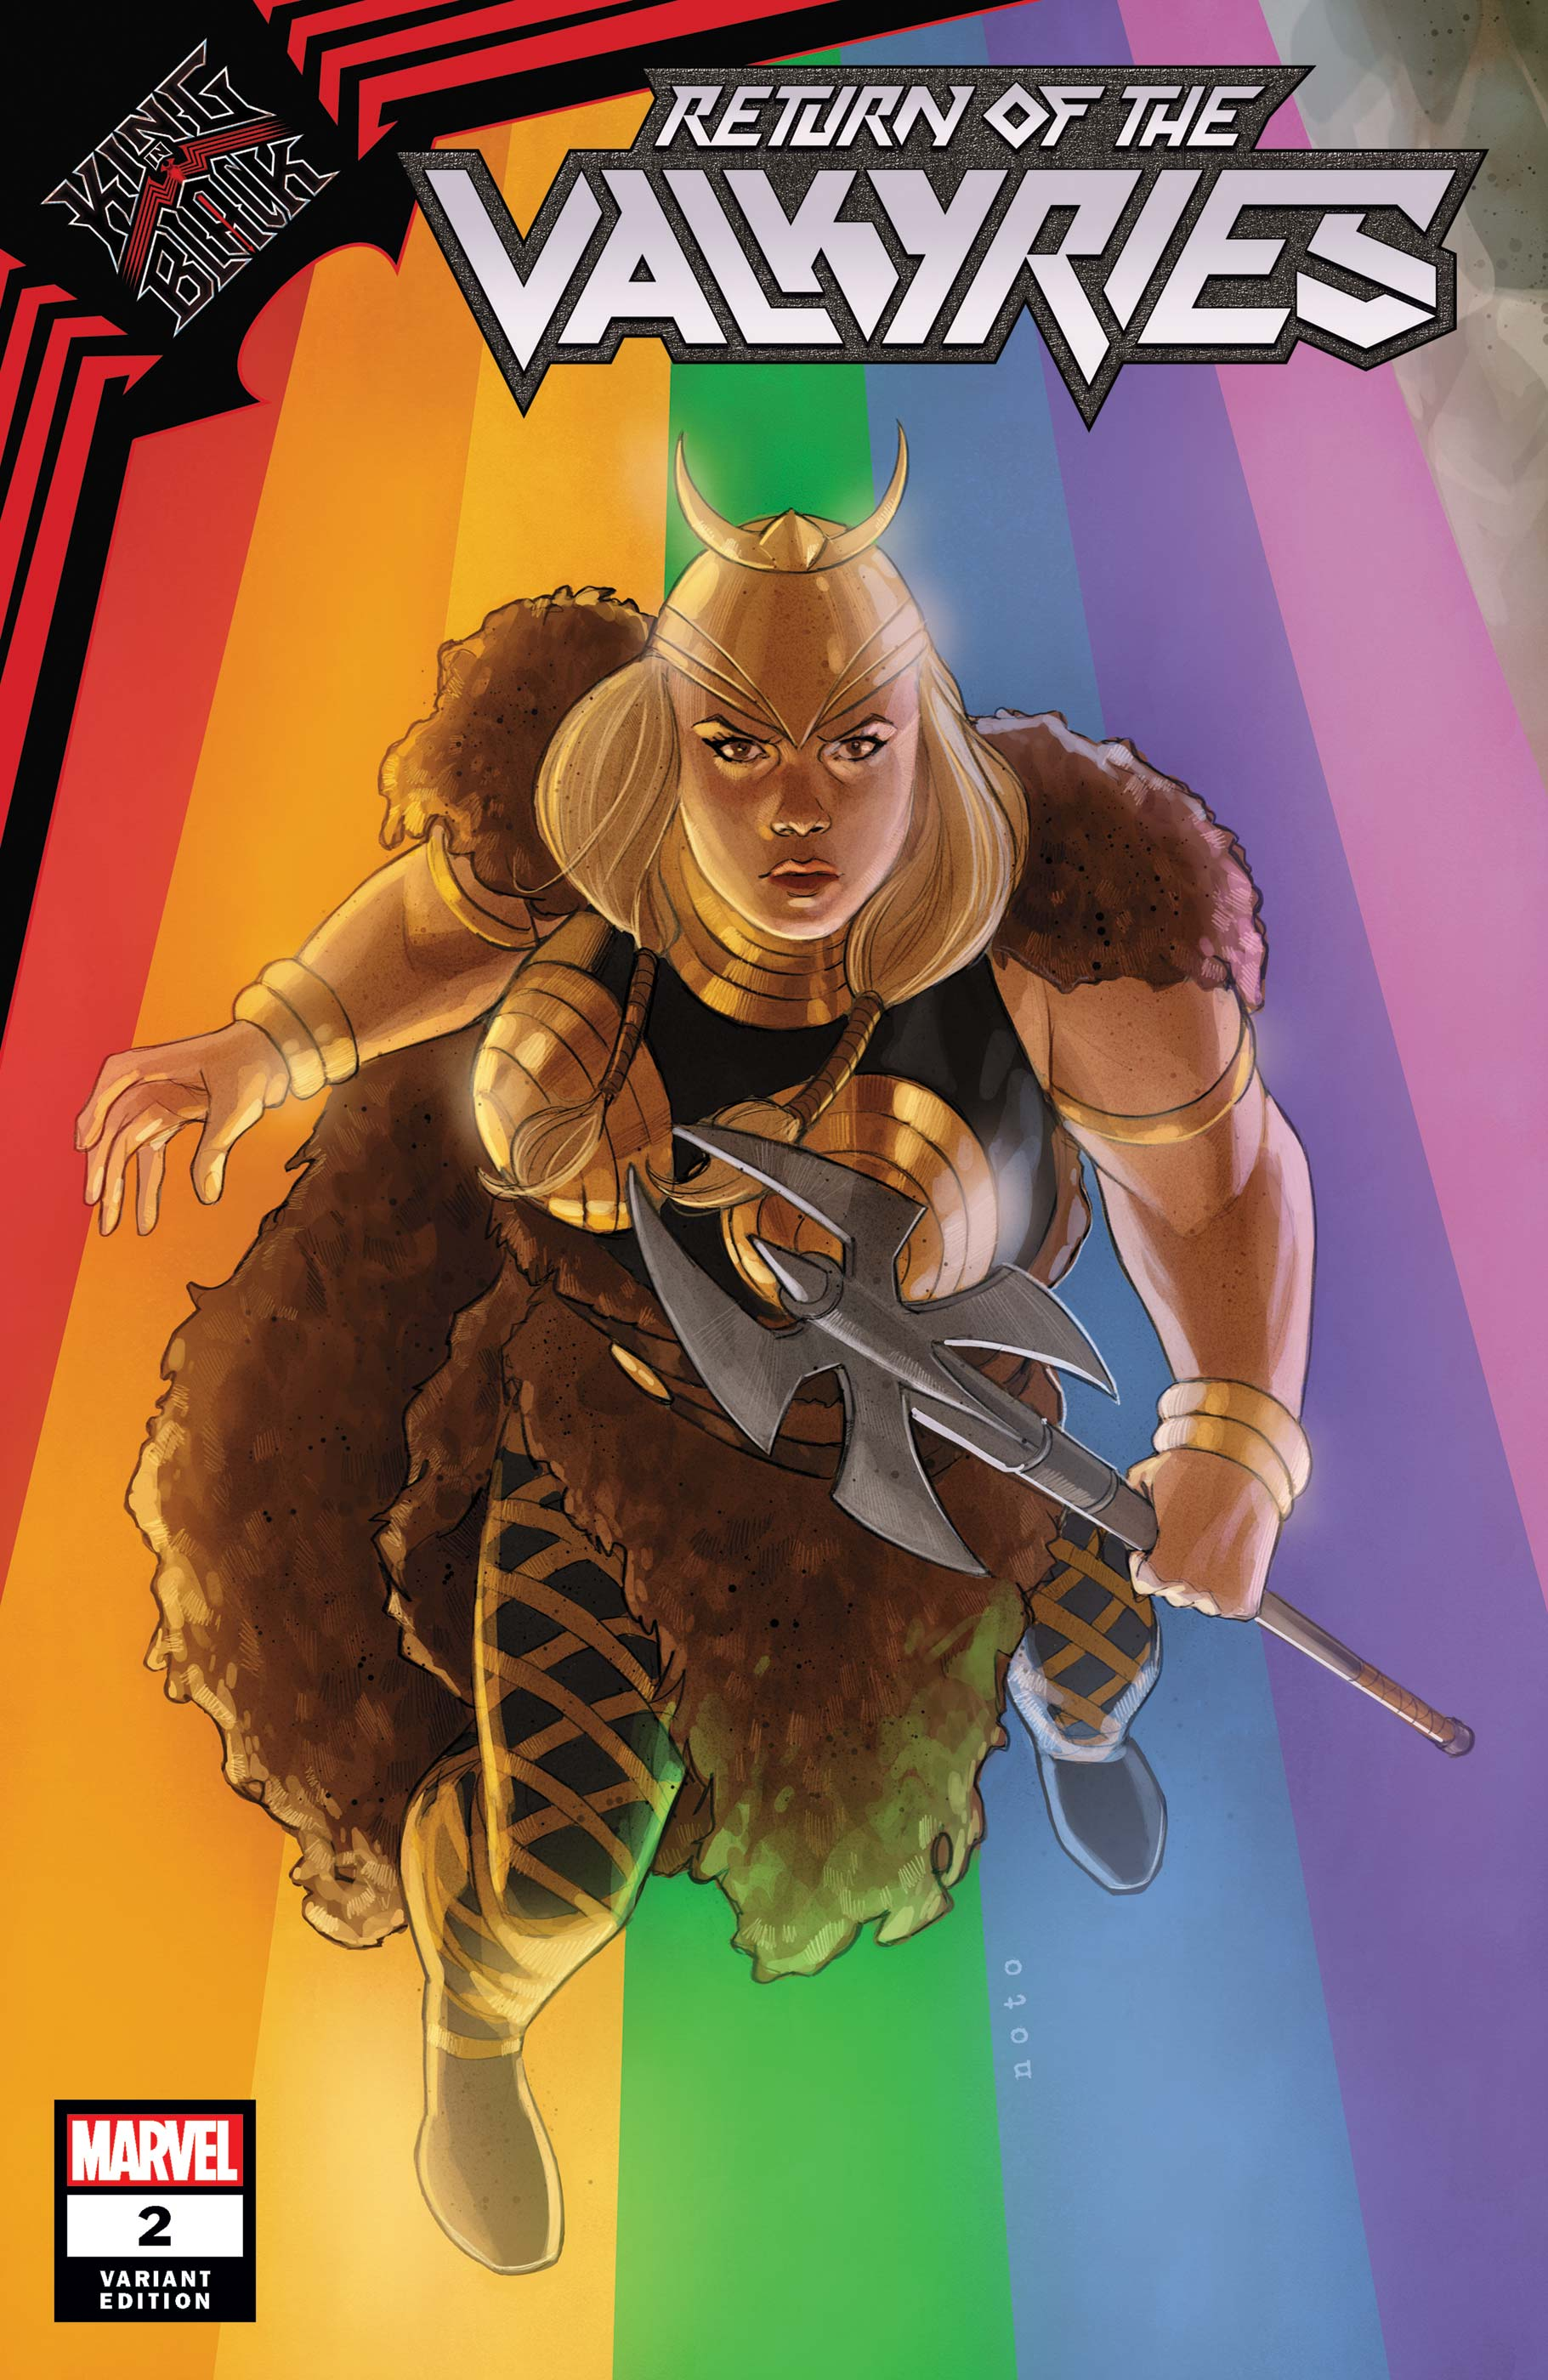 King in Black: Return of the Valkyries (2021) #2 (Variant)